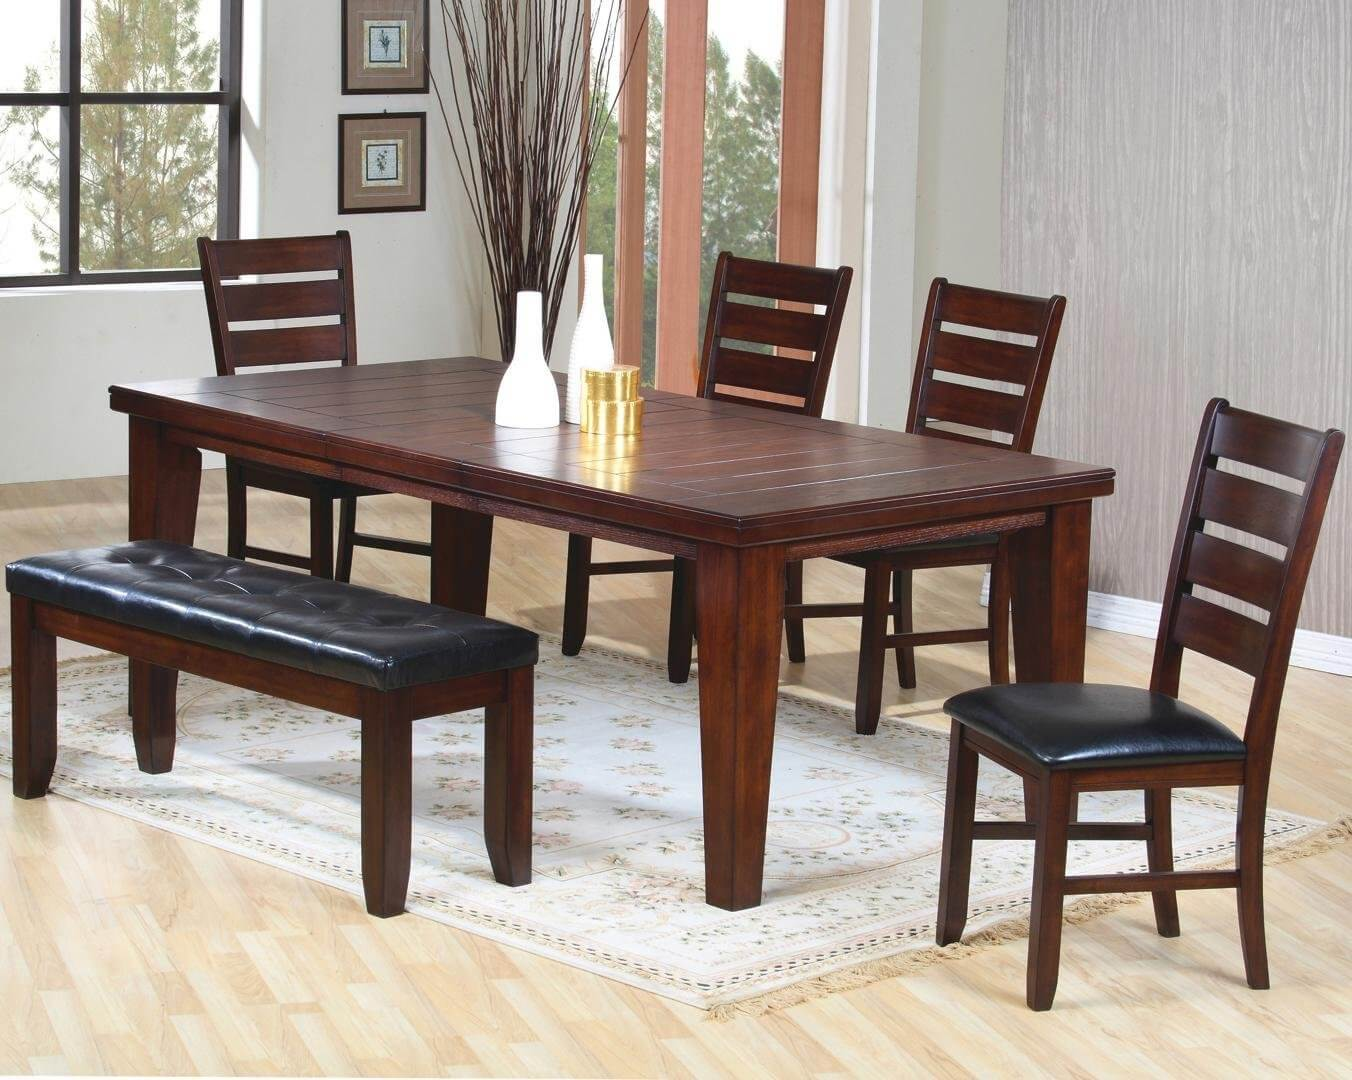 Solid wood six piece dining set with cushioned bench. The finish is dark oak wood : oak kitchen table and chairs set - pezcame.com